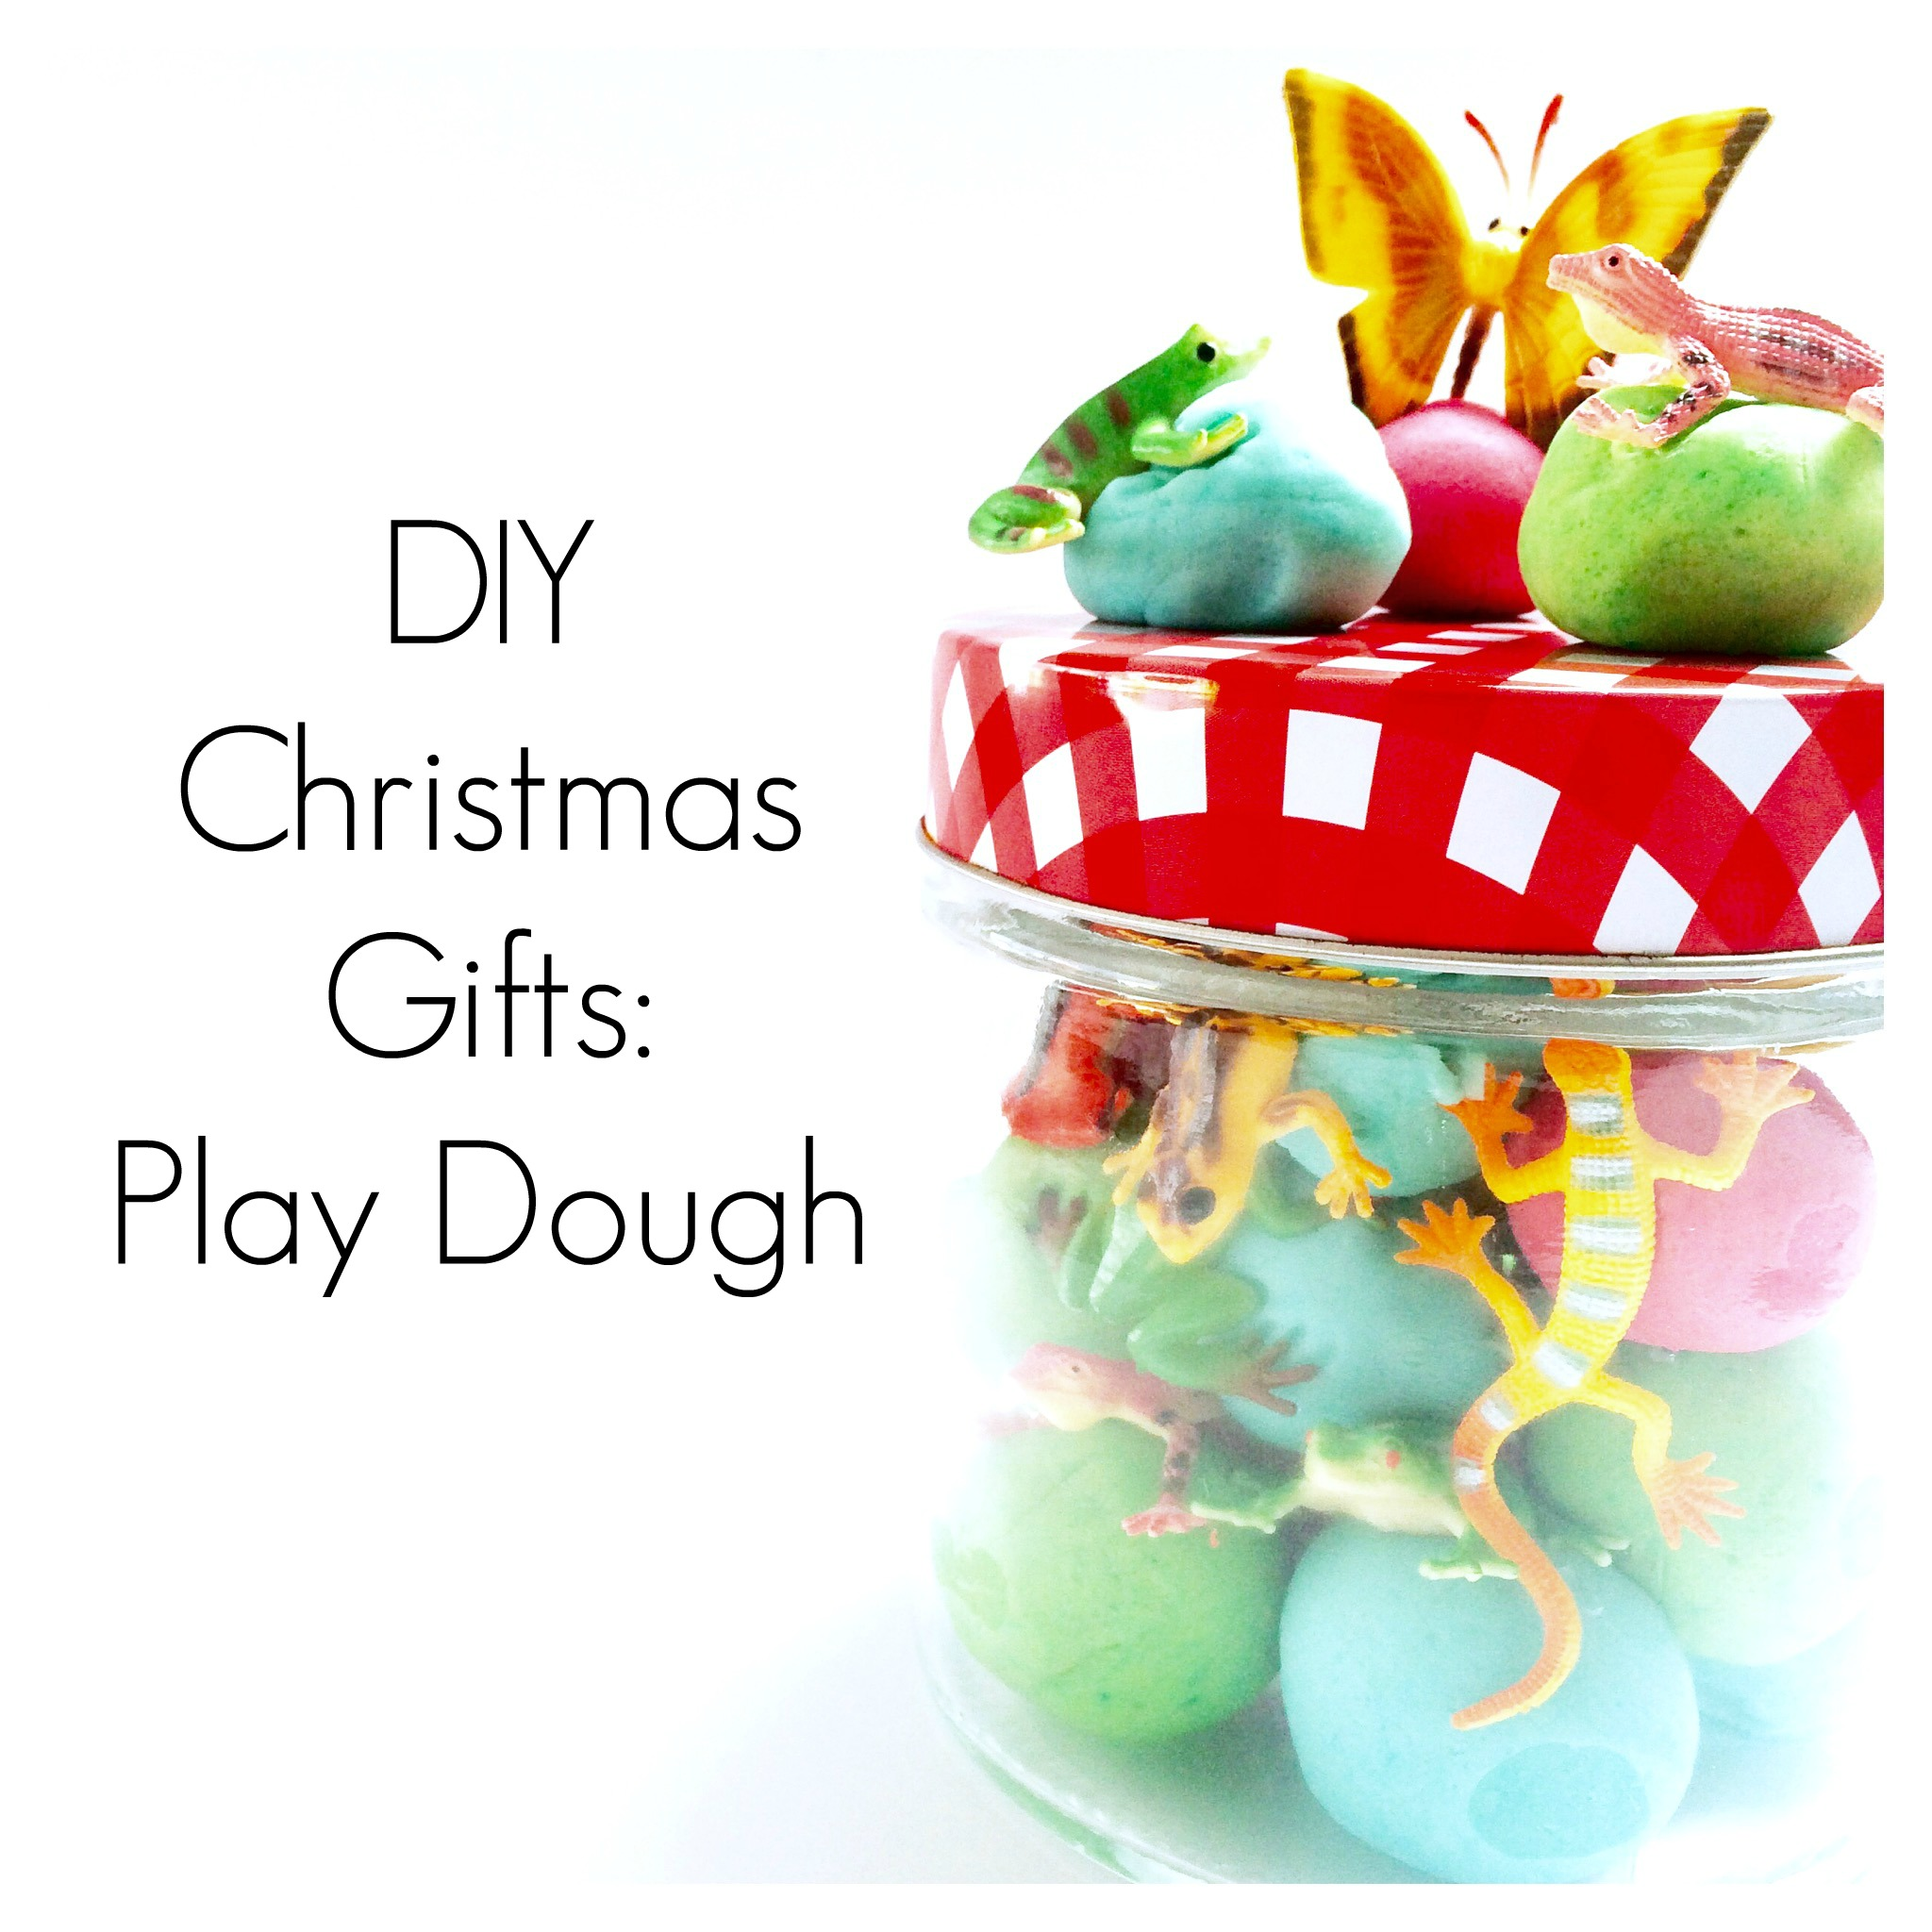 This is our very favourite DIY play dough recipe as it is easy and no-cook. Package it up with some little toys and it is perfect as an economical, DIY Christmas gift. #playdough #christmasforkids #homemadeChristmas #DIYchristmasgiftsforkids